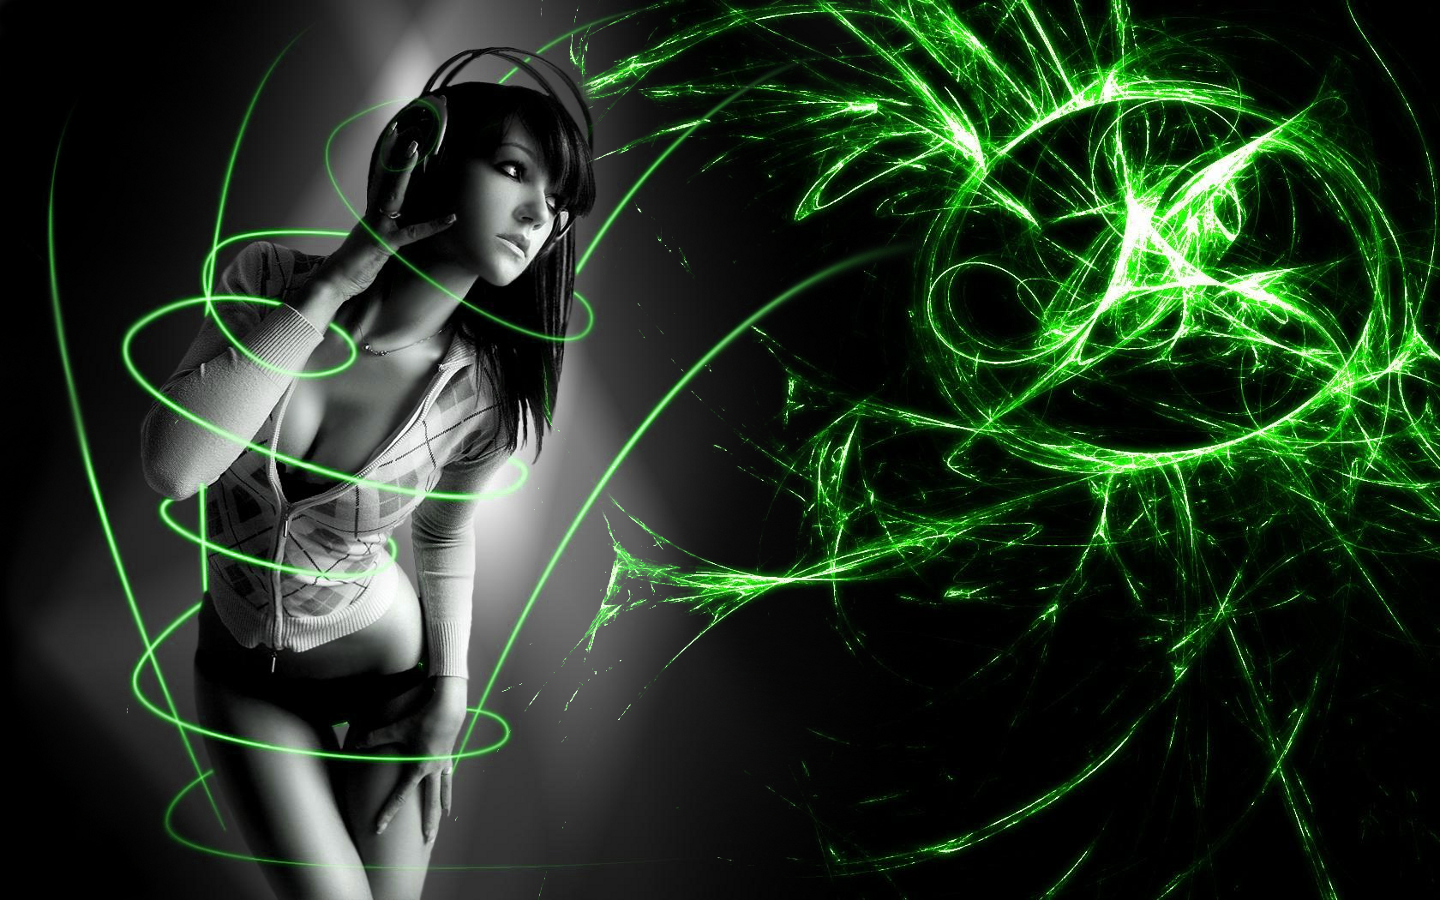 Awesome Wallpaper Abstract 3D Girl Epic Plugins 1440x900